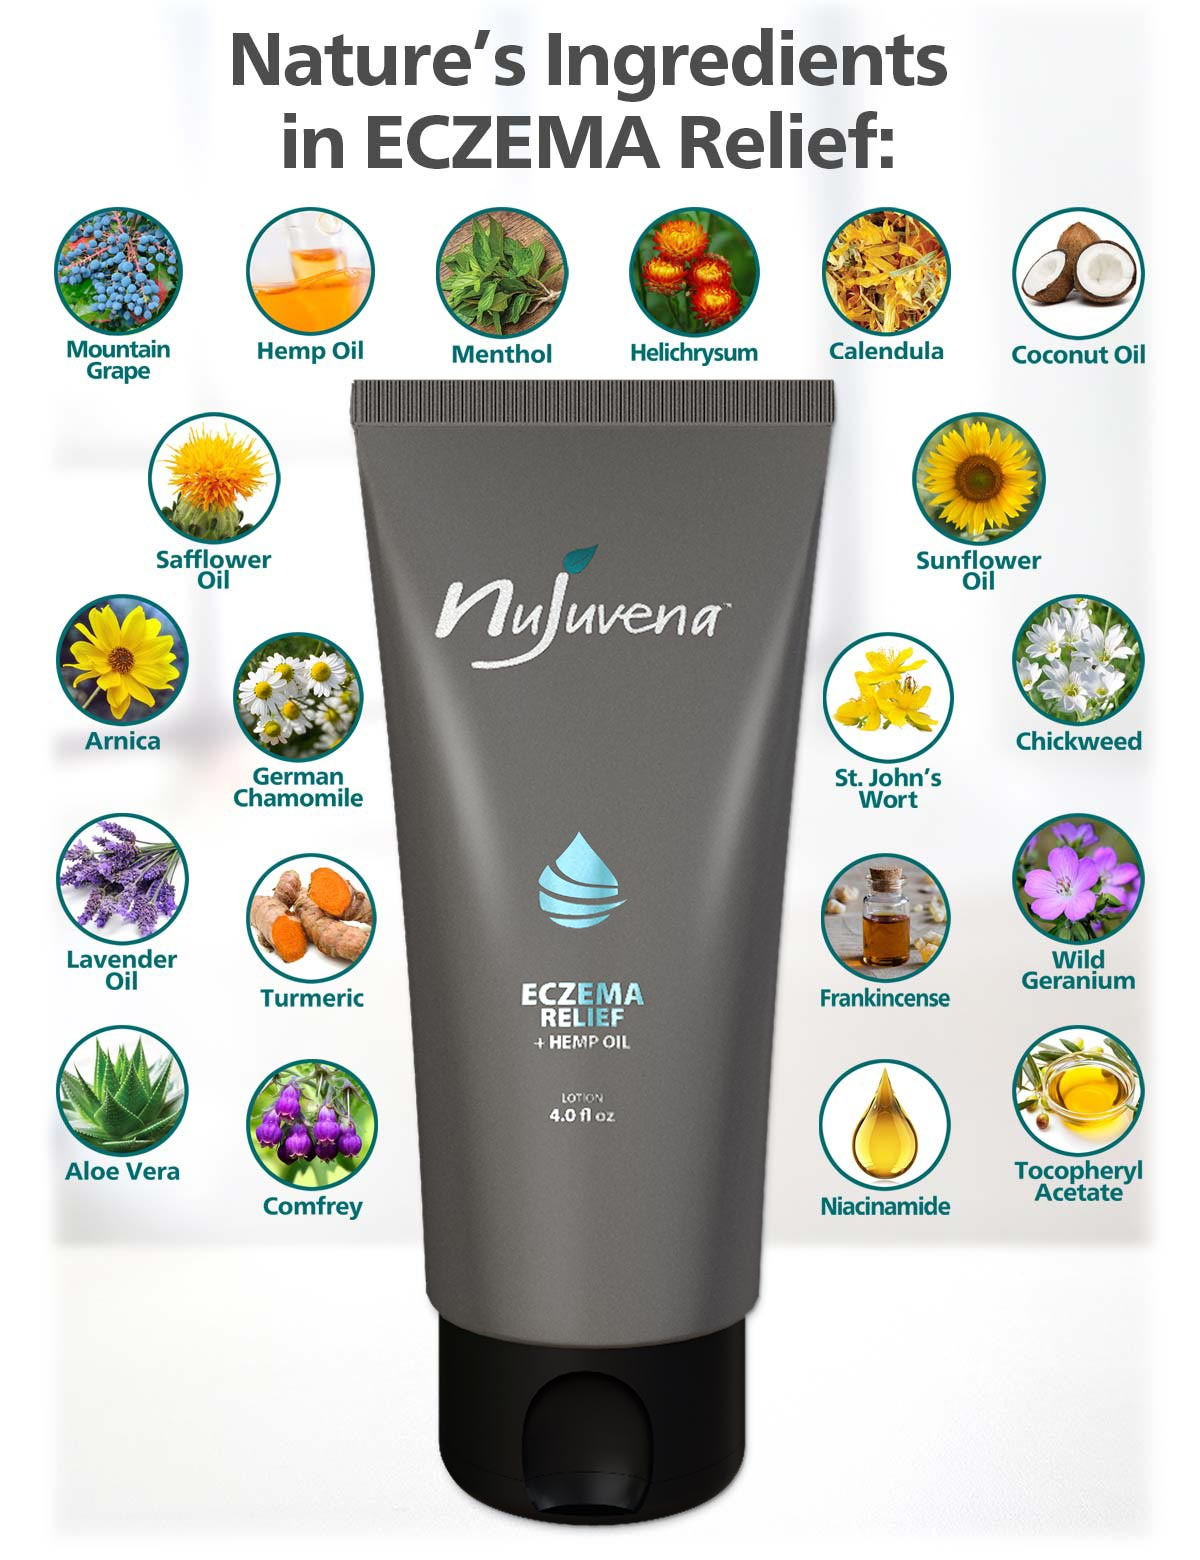 Eczema Relief by Nujuvena is a new, soothing lotion that harnesses the power of nature's ingredients to address the underlying causes of eczema induced irritation.